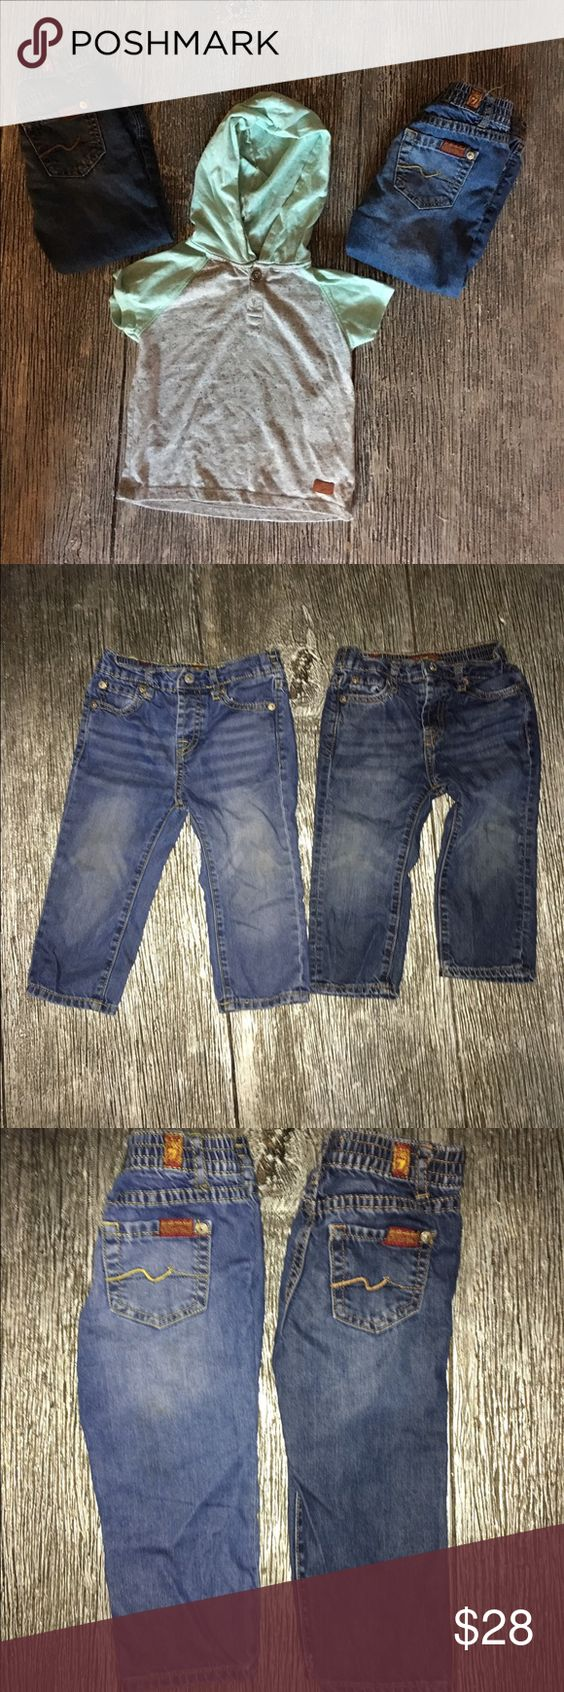 7 for all mankind jeans Baby 7 for all mankind jeans sz 18 months with free top that's also 7 for all mankind ( the top is free since it does have a couple minor stains) great condition as he had so much clothes these are barely worn purchased at Nordstrom @ galleria mall 7 For All Mankind Bottoms Jeans